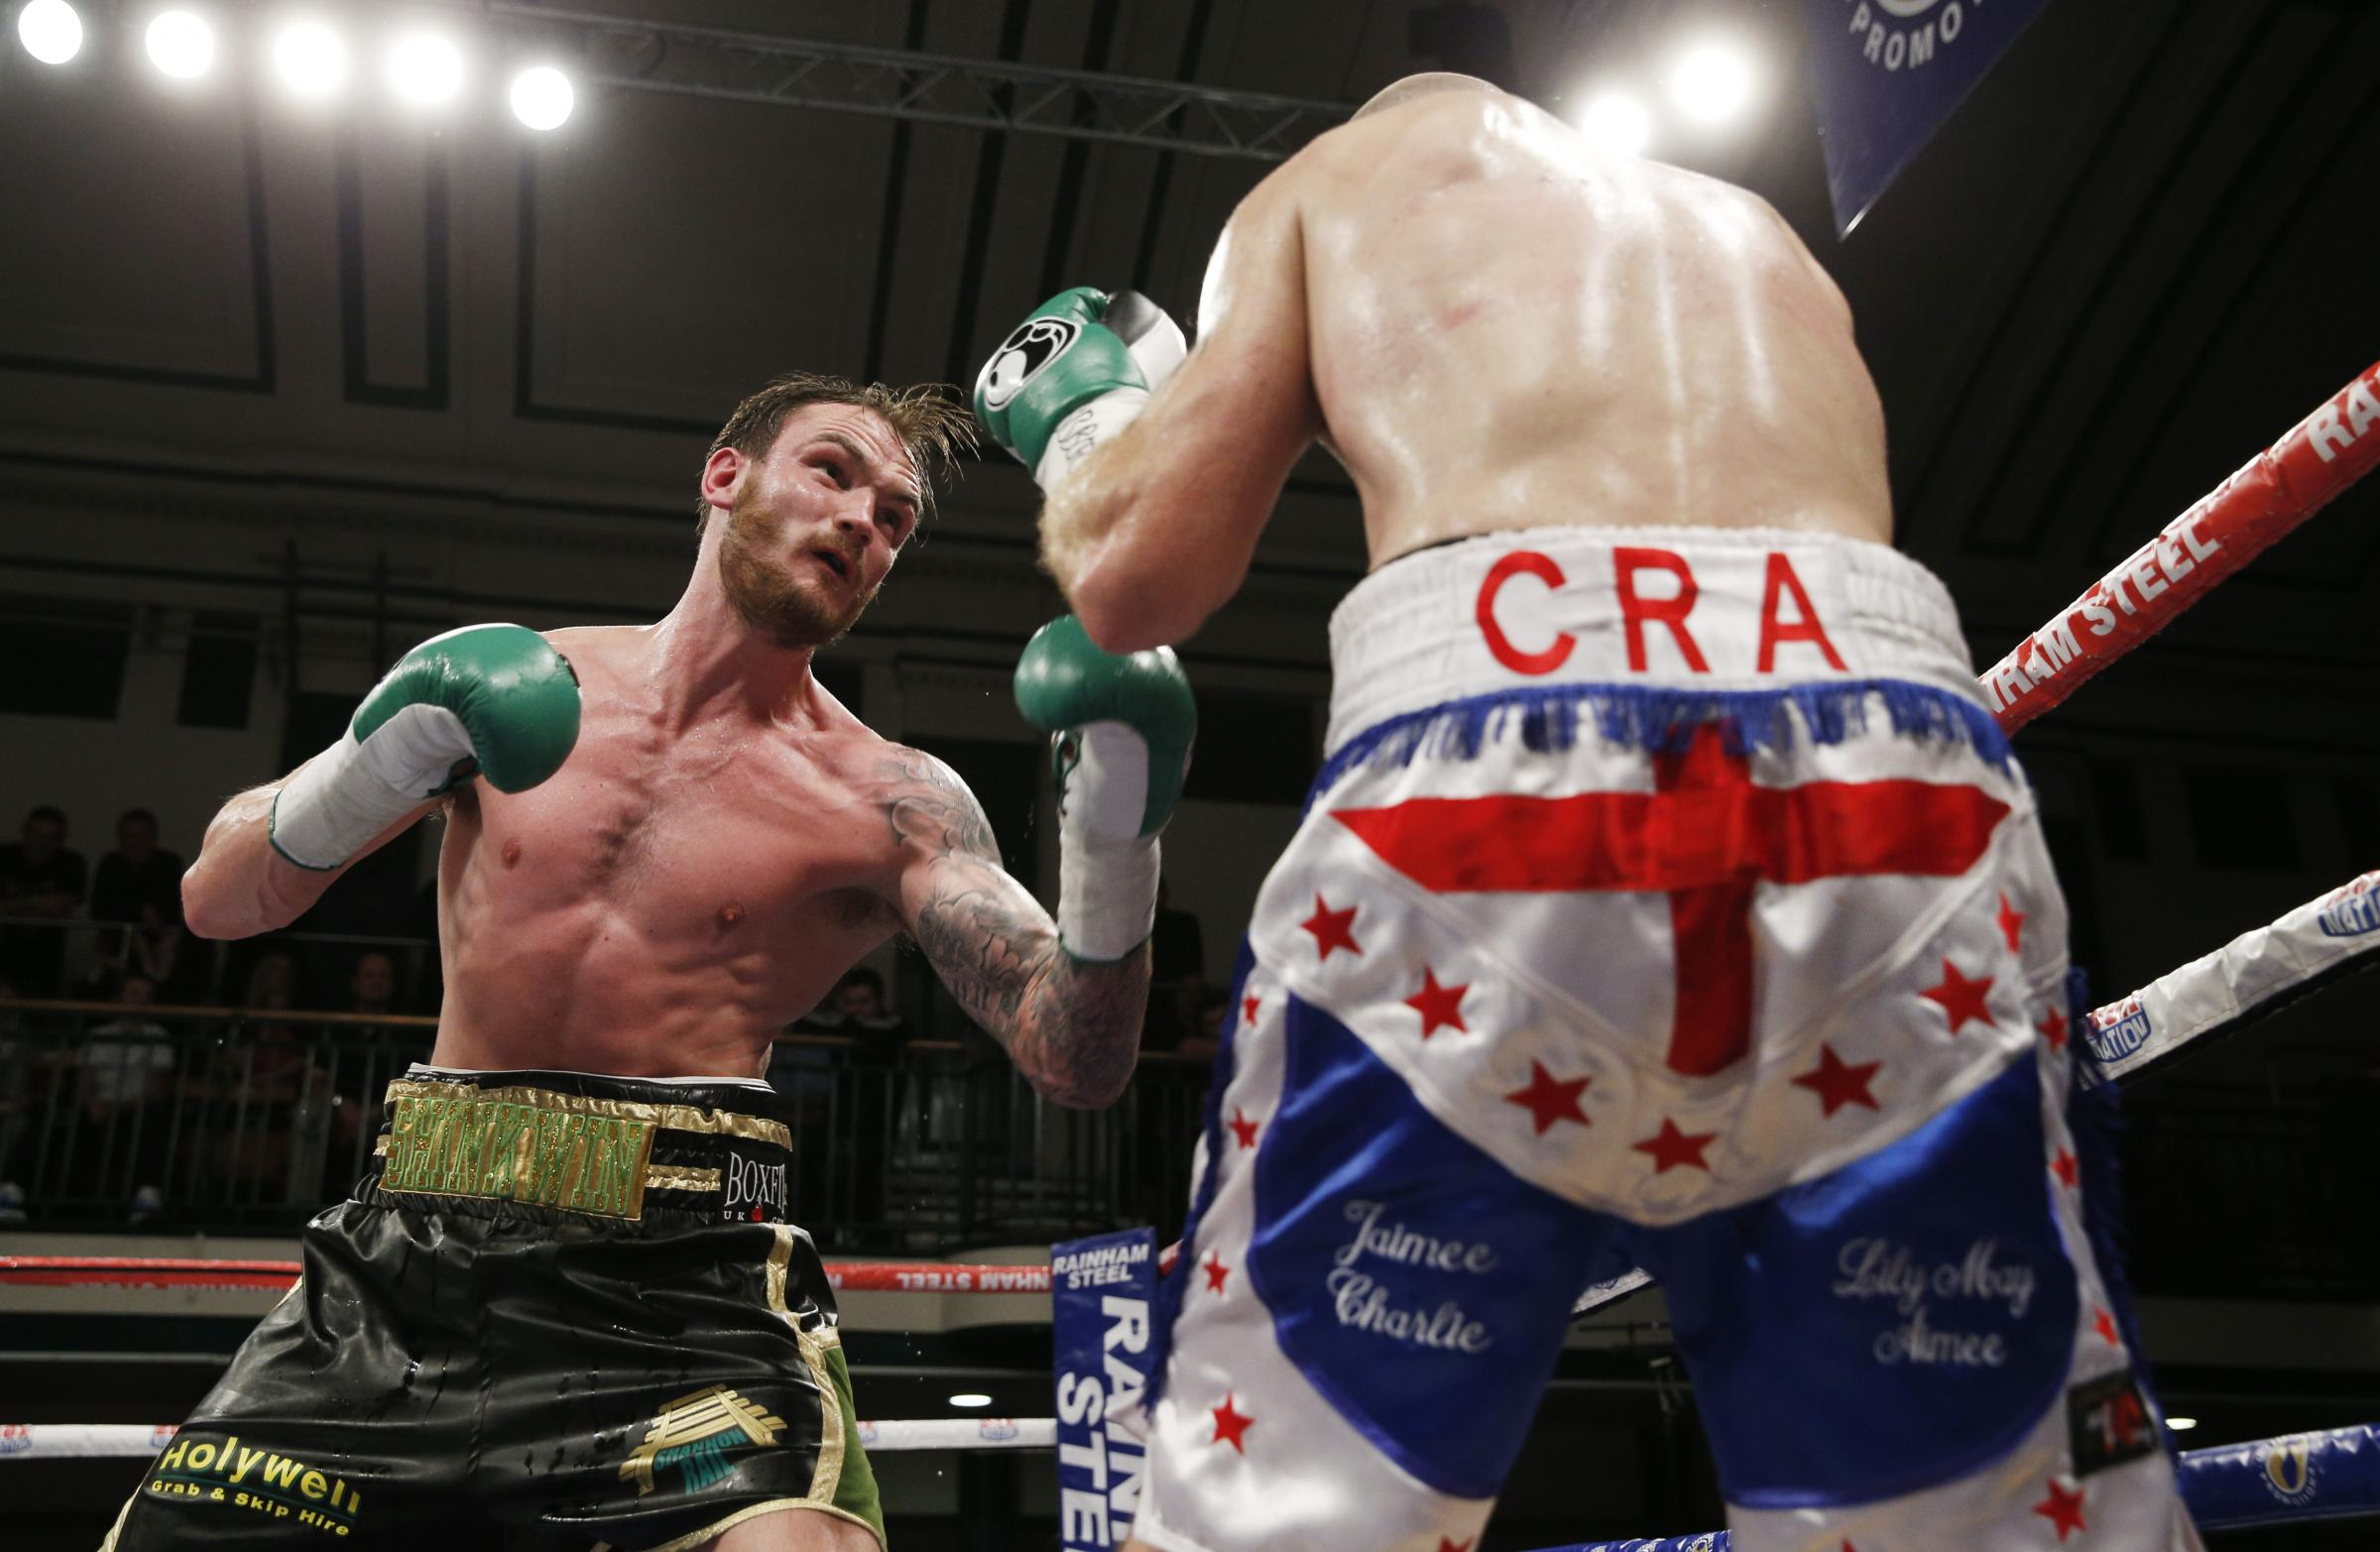 Miles Shinkwin faces Liam Conroy on March 31. Picture: Action Images